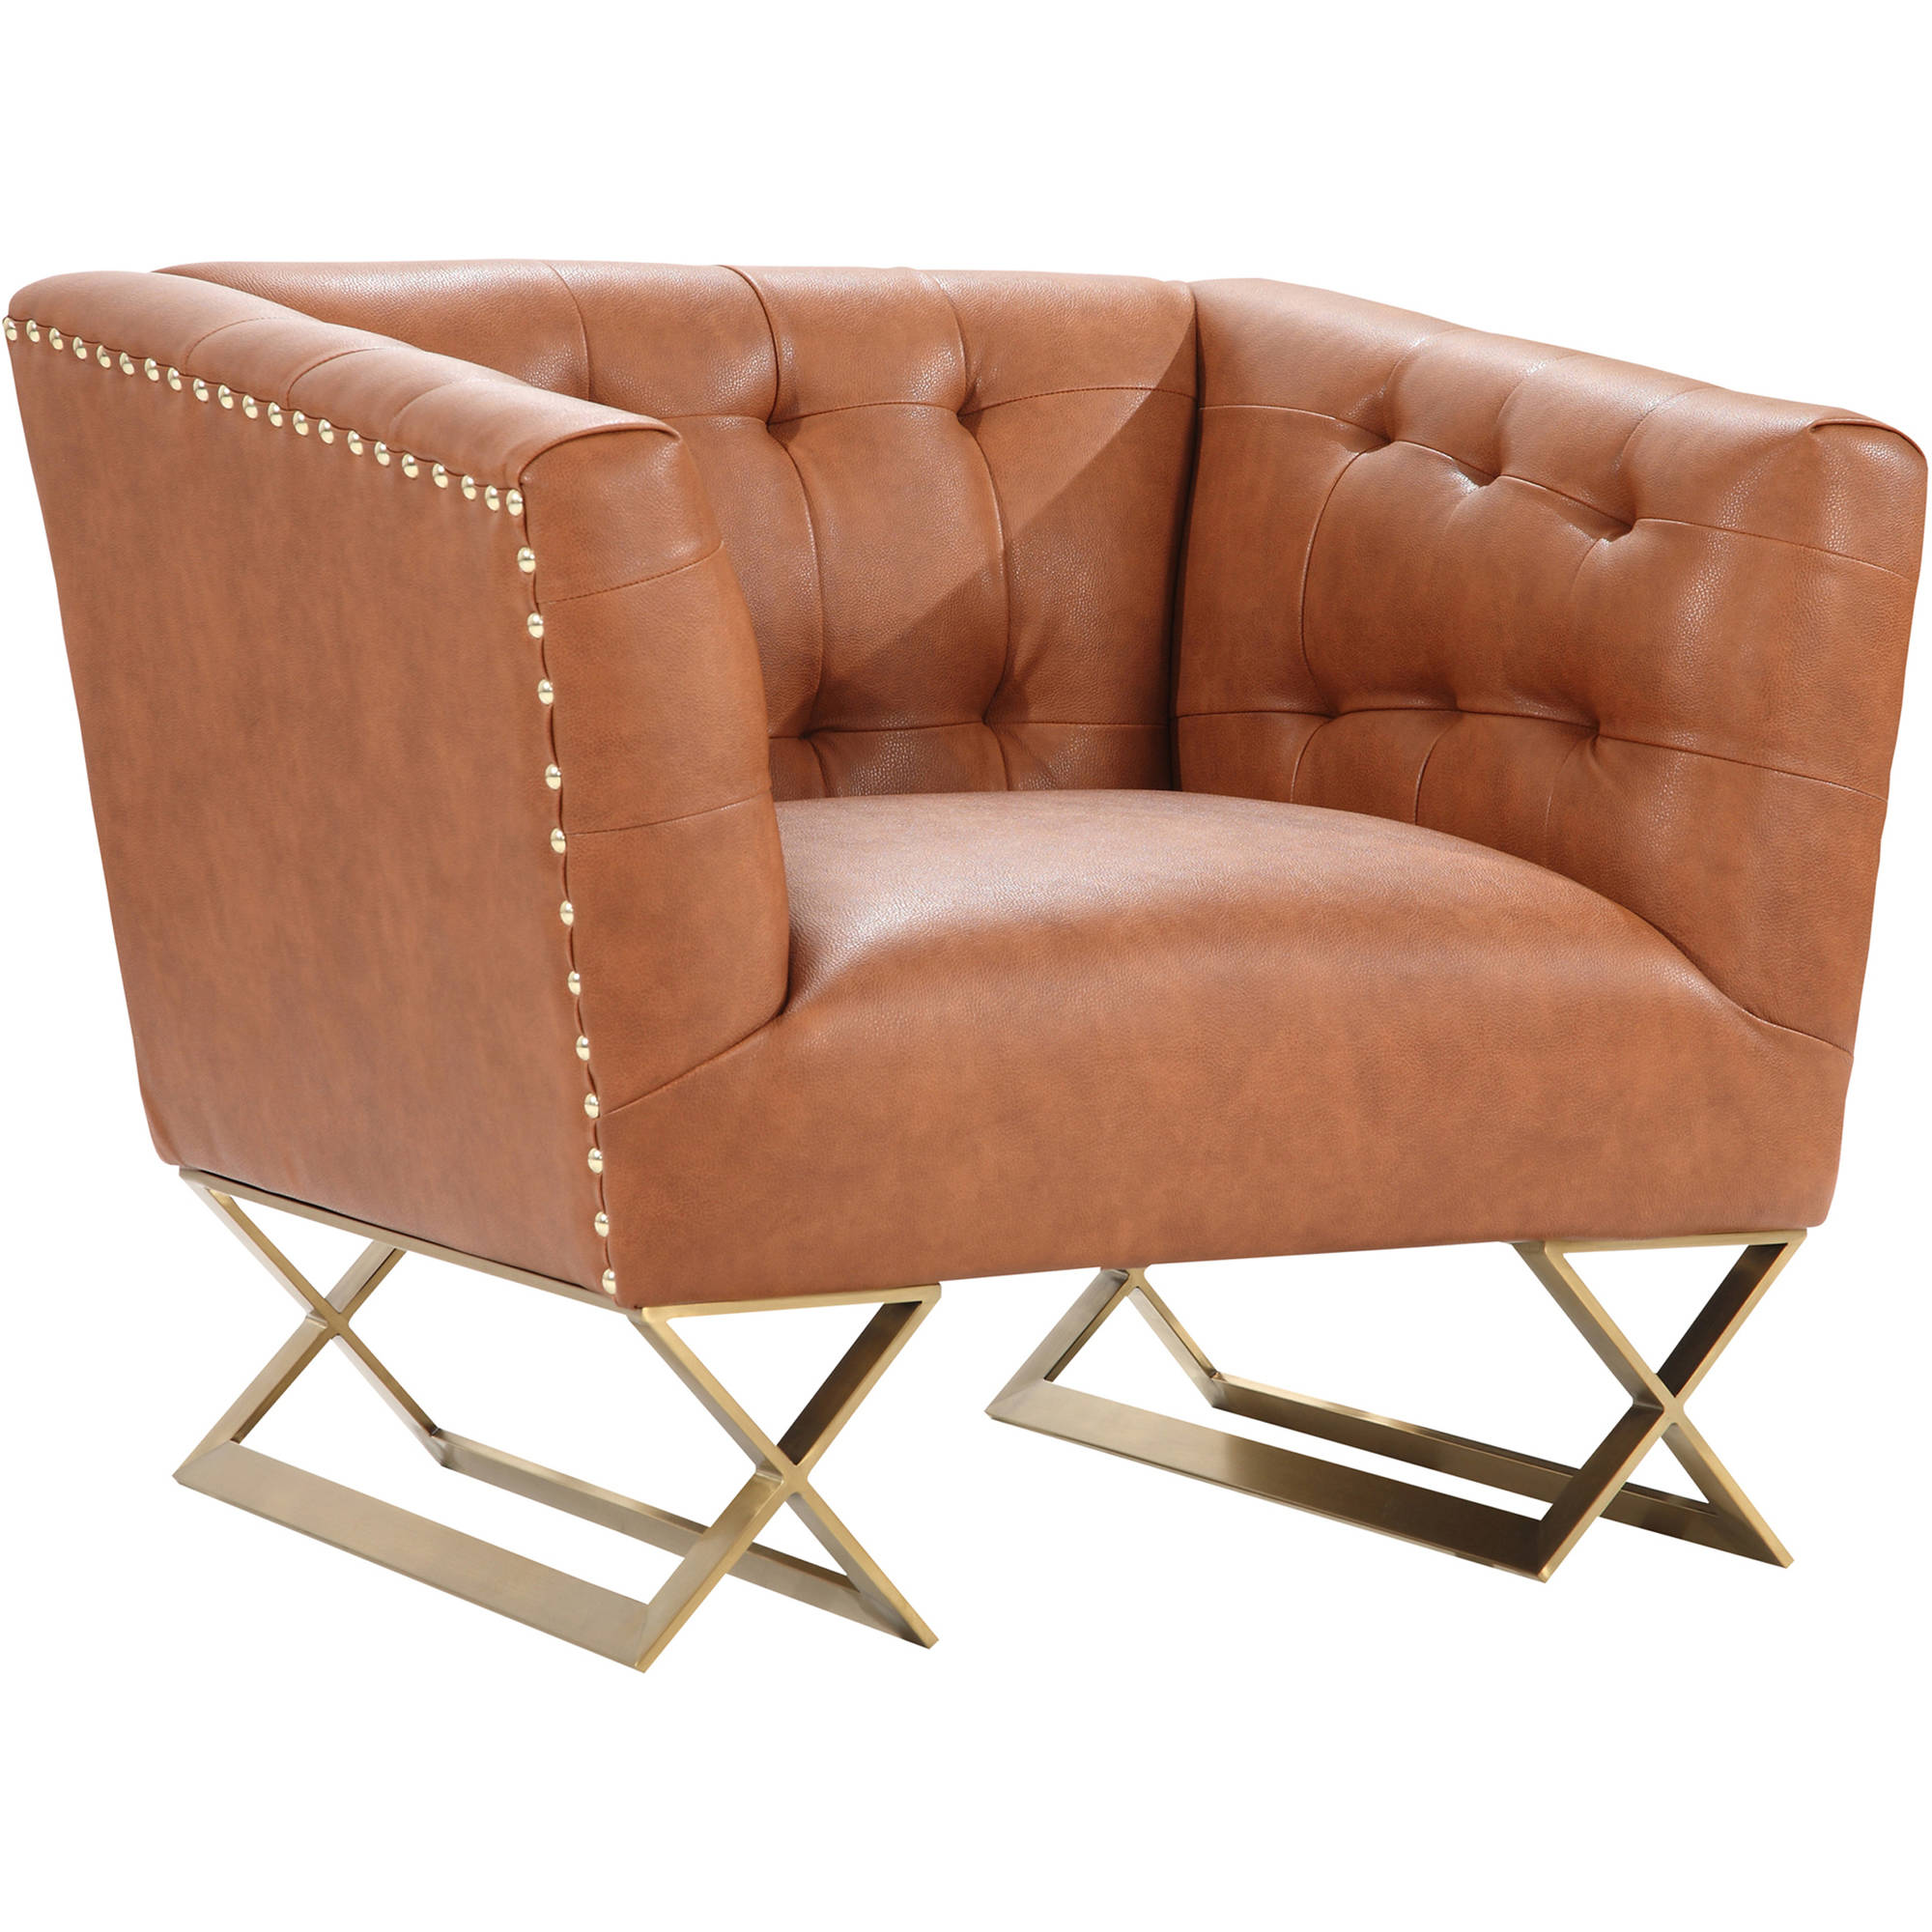 ARMEN LIVING Jasper Modern Chair, Gold Matte Finish With Chestnut